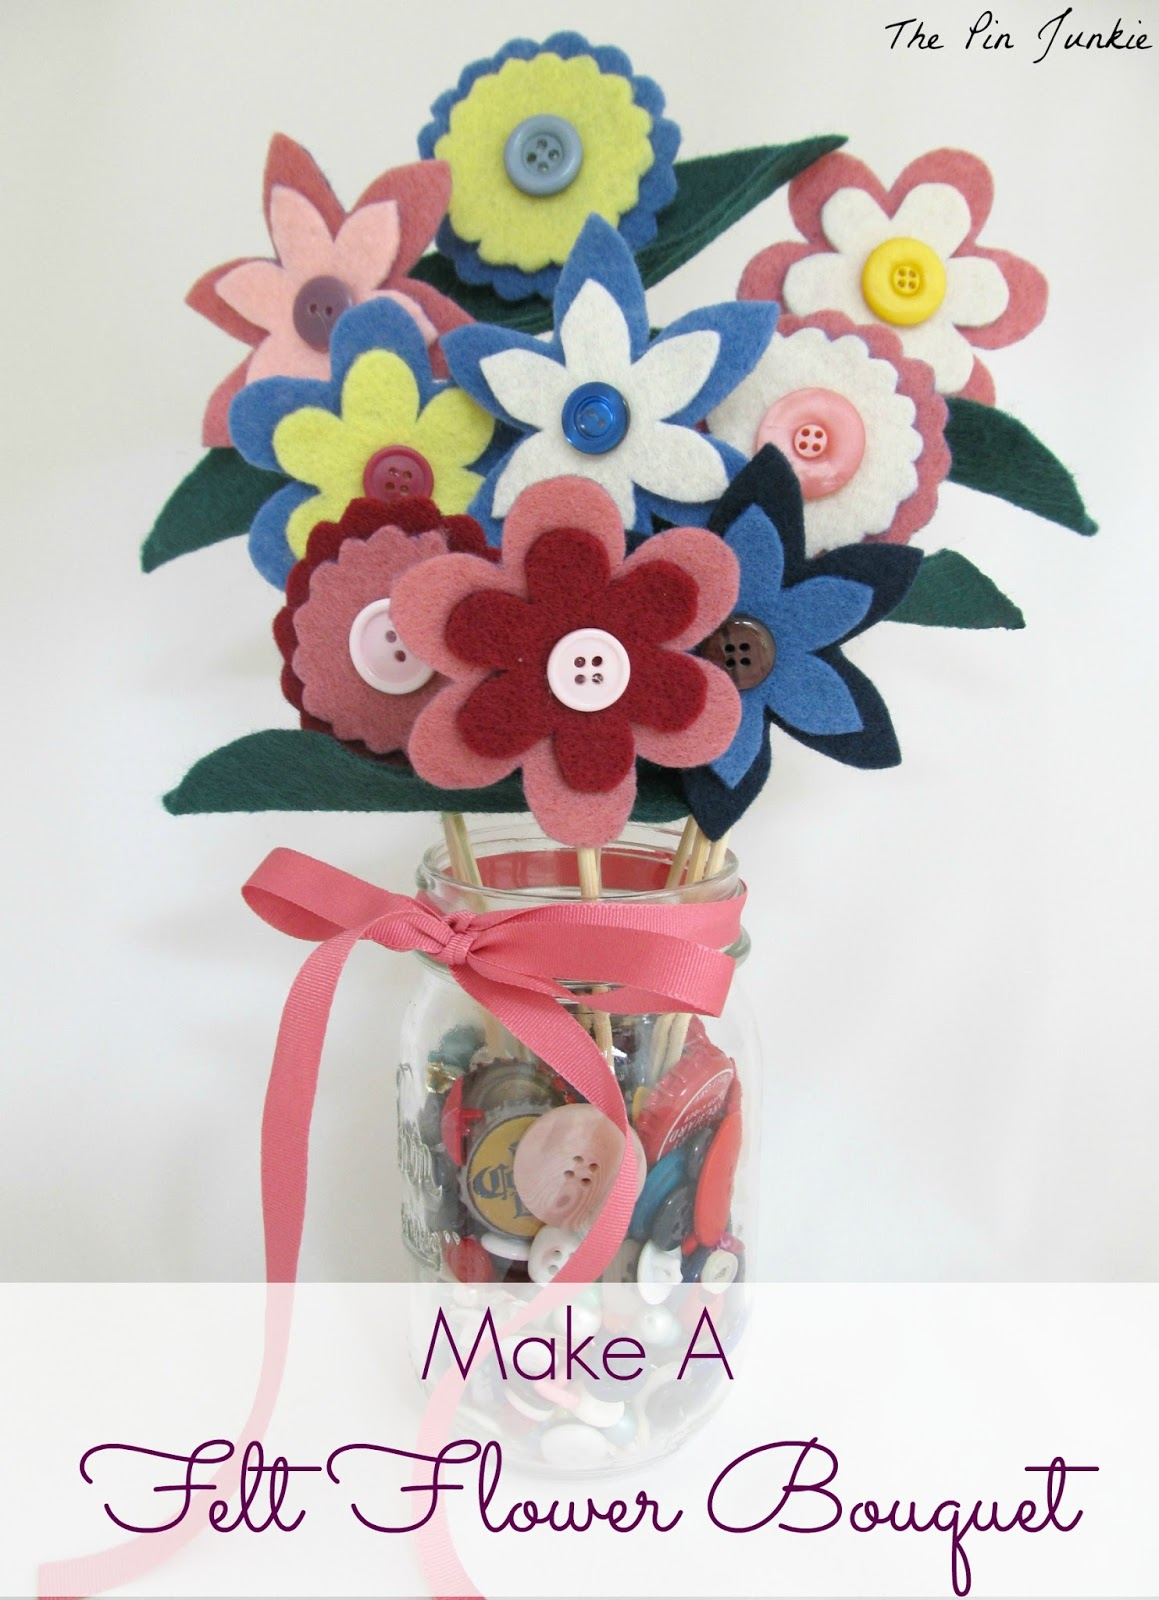 The pin junkie how to make paper bluebonnets - Felt Flowers